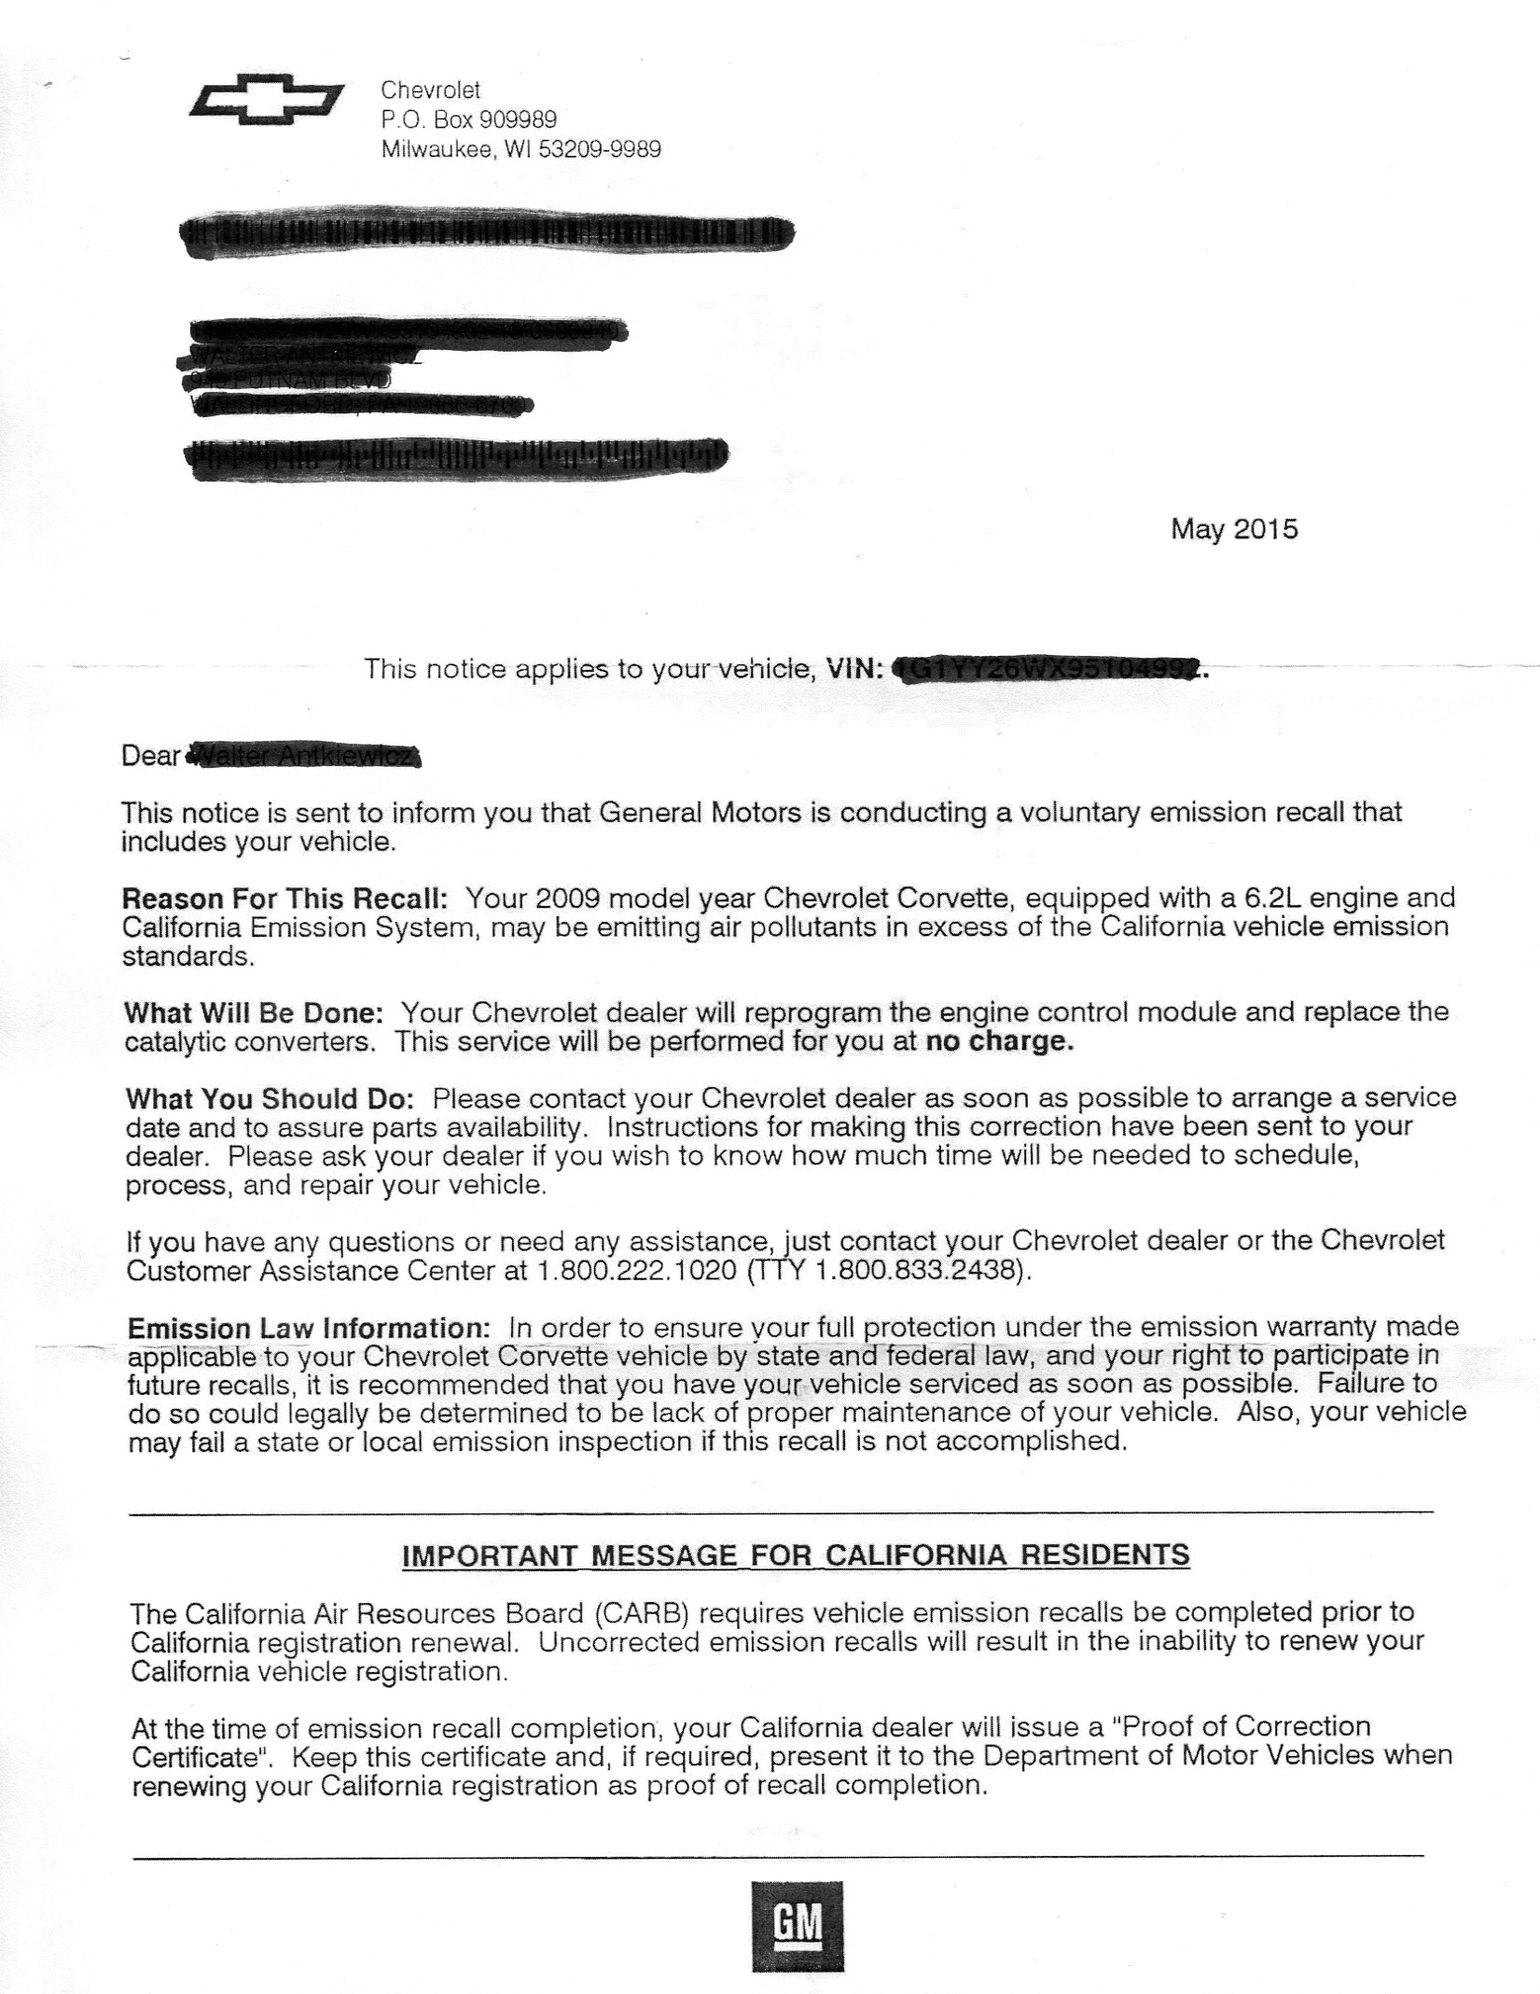 Emission recall corvetteforum chevrolet corvette forum discussion here is the actual recall letter thecheapjerseys Choice Image